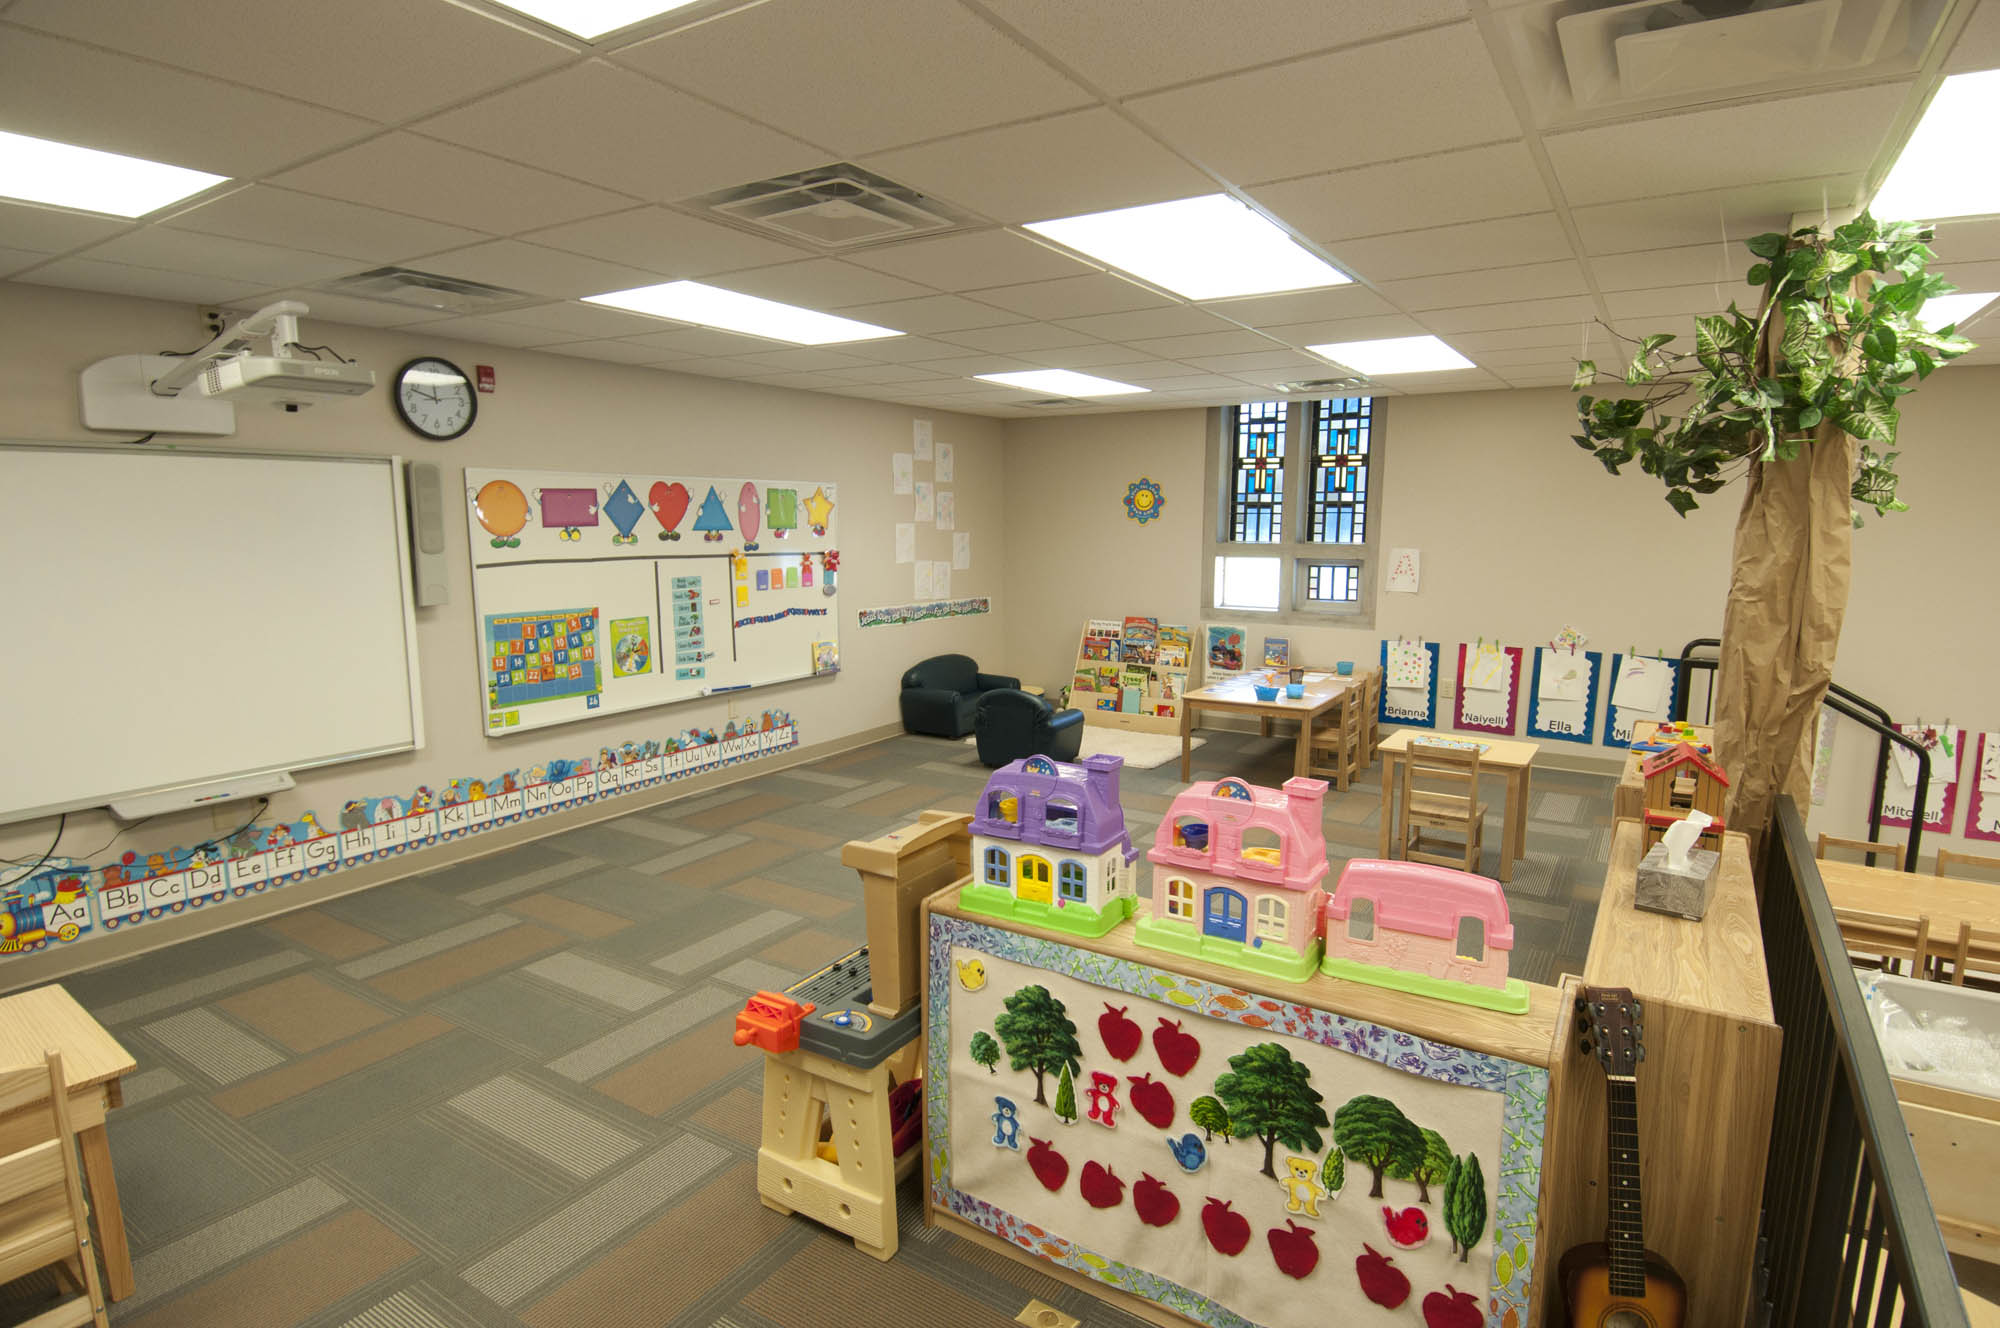 3K-Classroom-wide-overview-Left.jpg